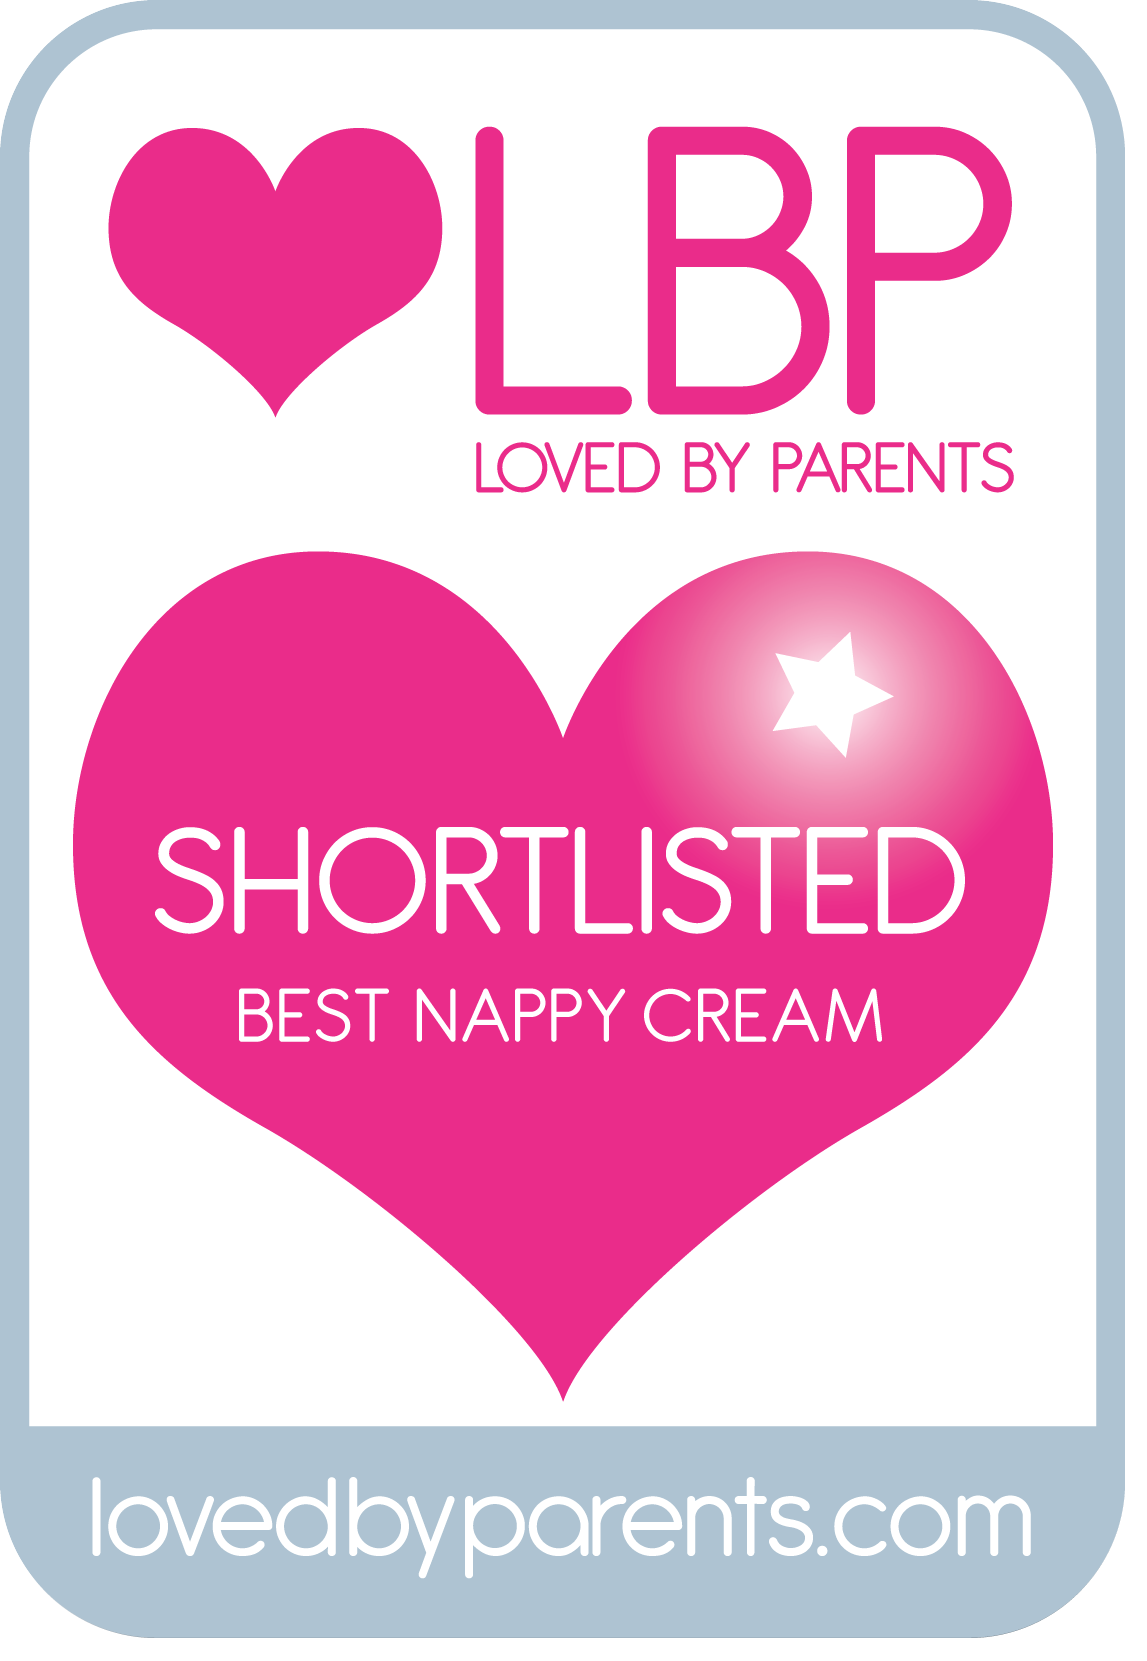 Loved By Parents, 2012 Awards - Shortlisted Best Nappy Cream